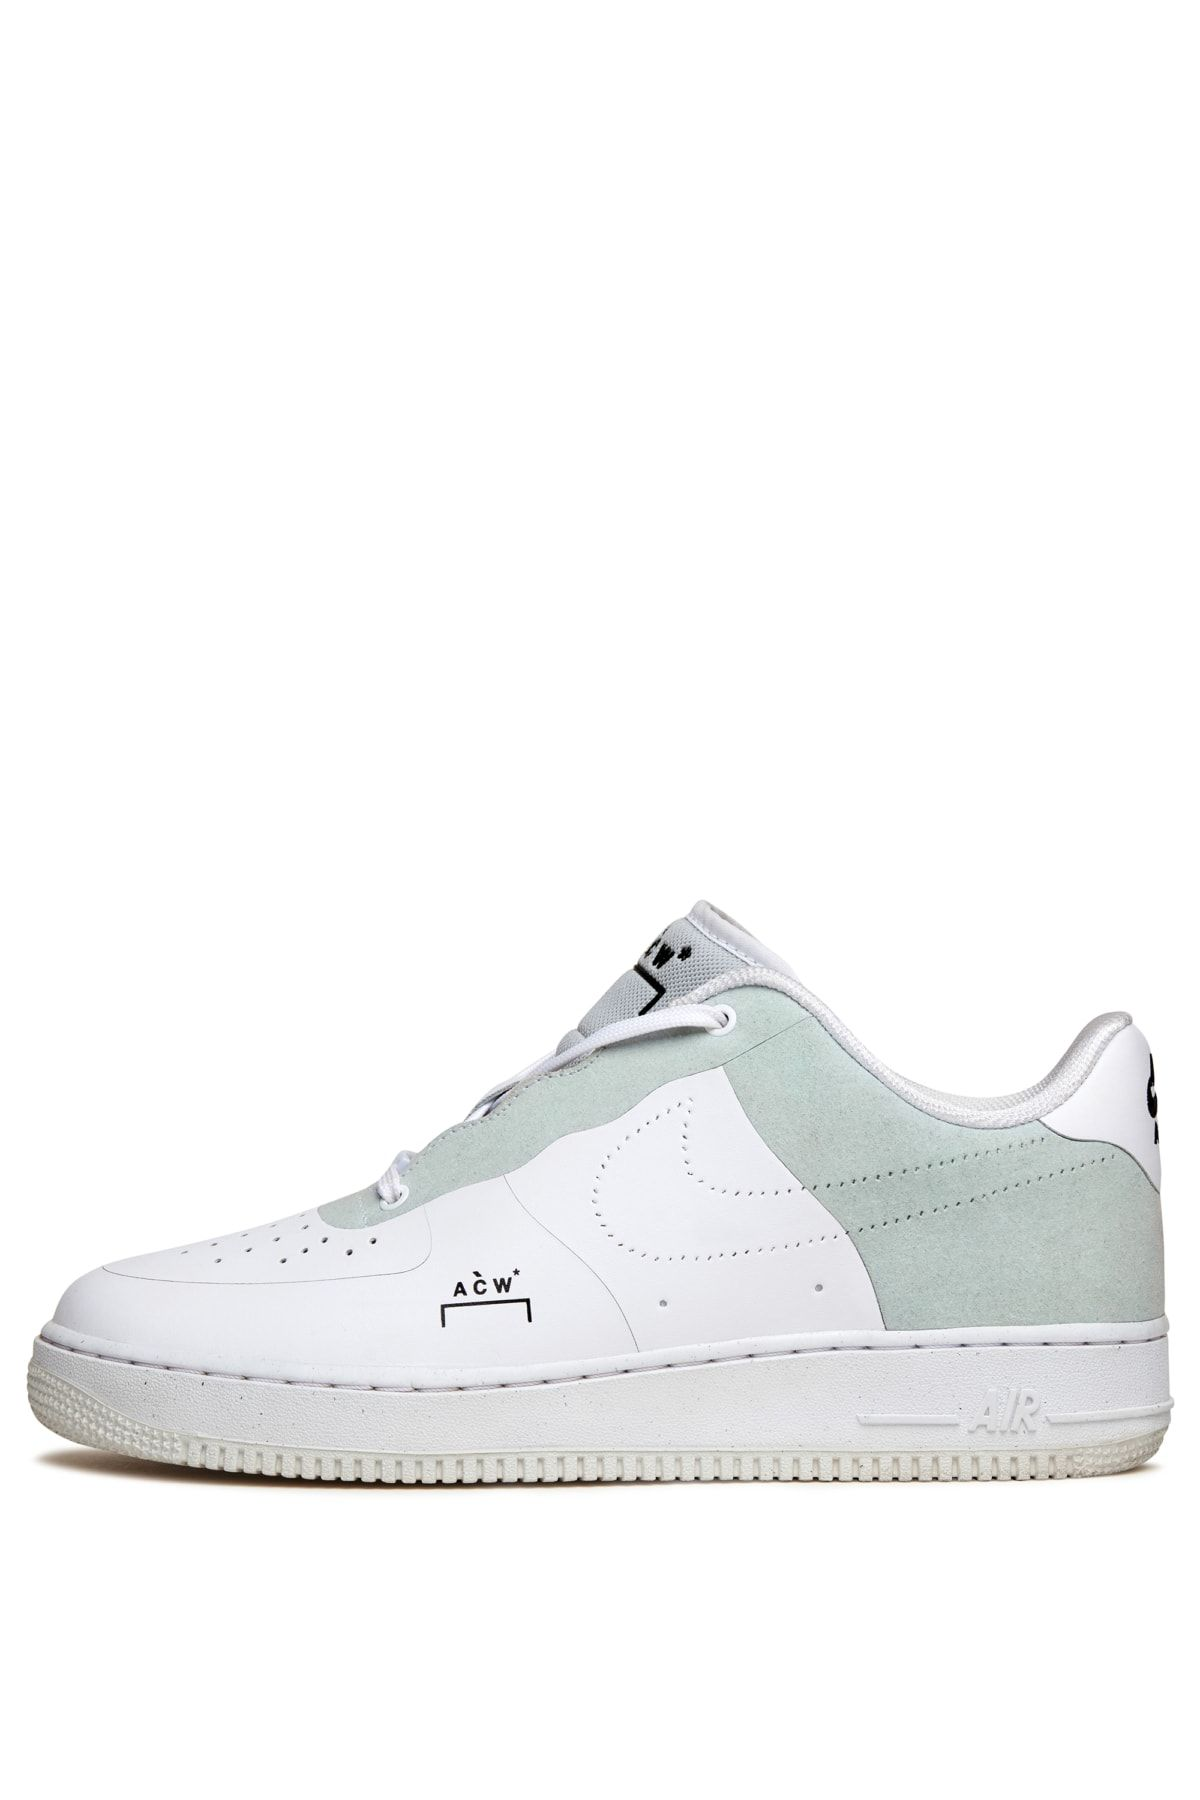 size 40 eef49 dba9f Nike x ACW Air Force 1 - Optic WhiteFlyleather - A-COLD